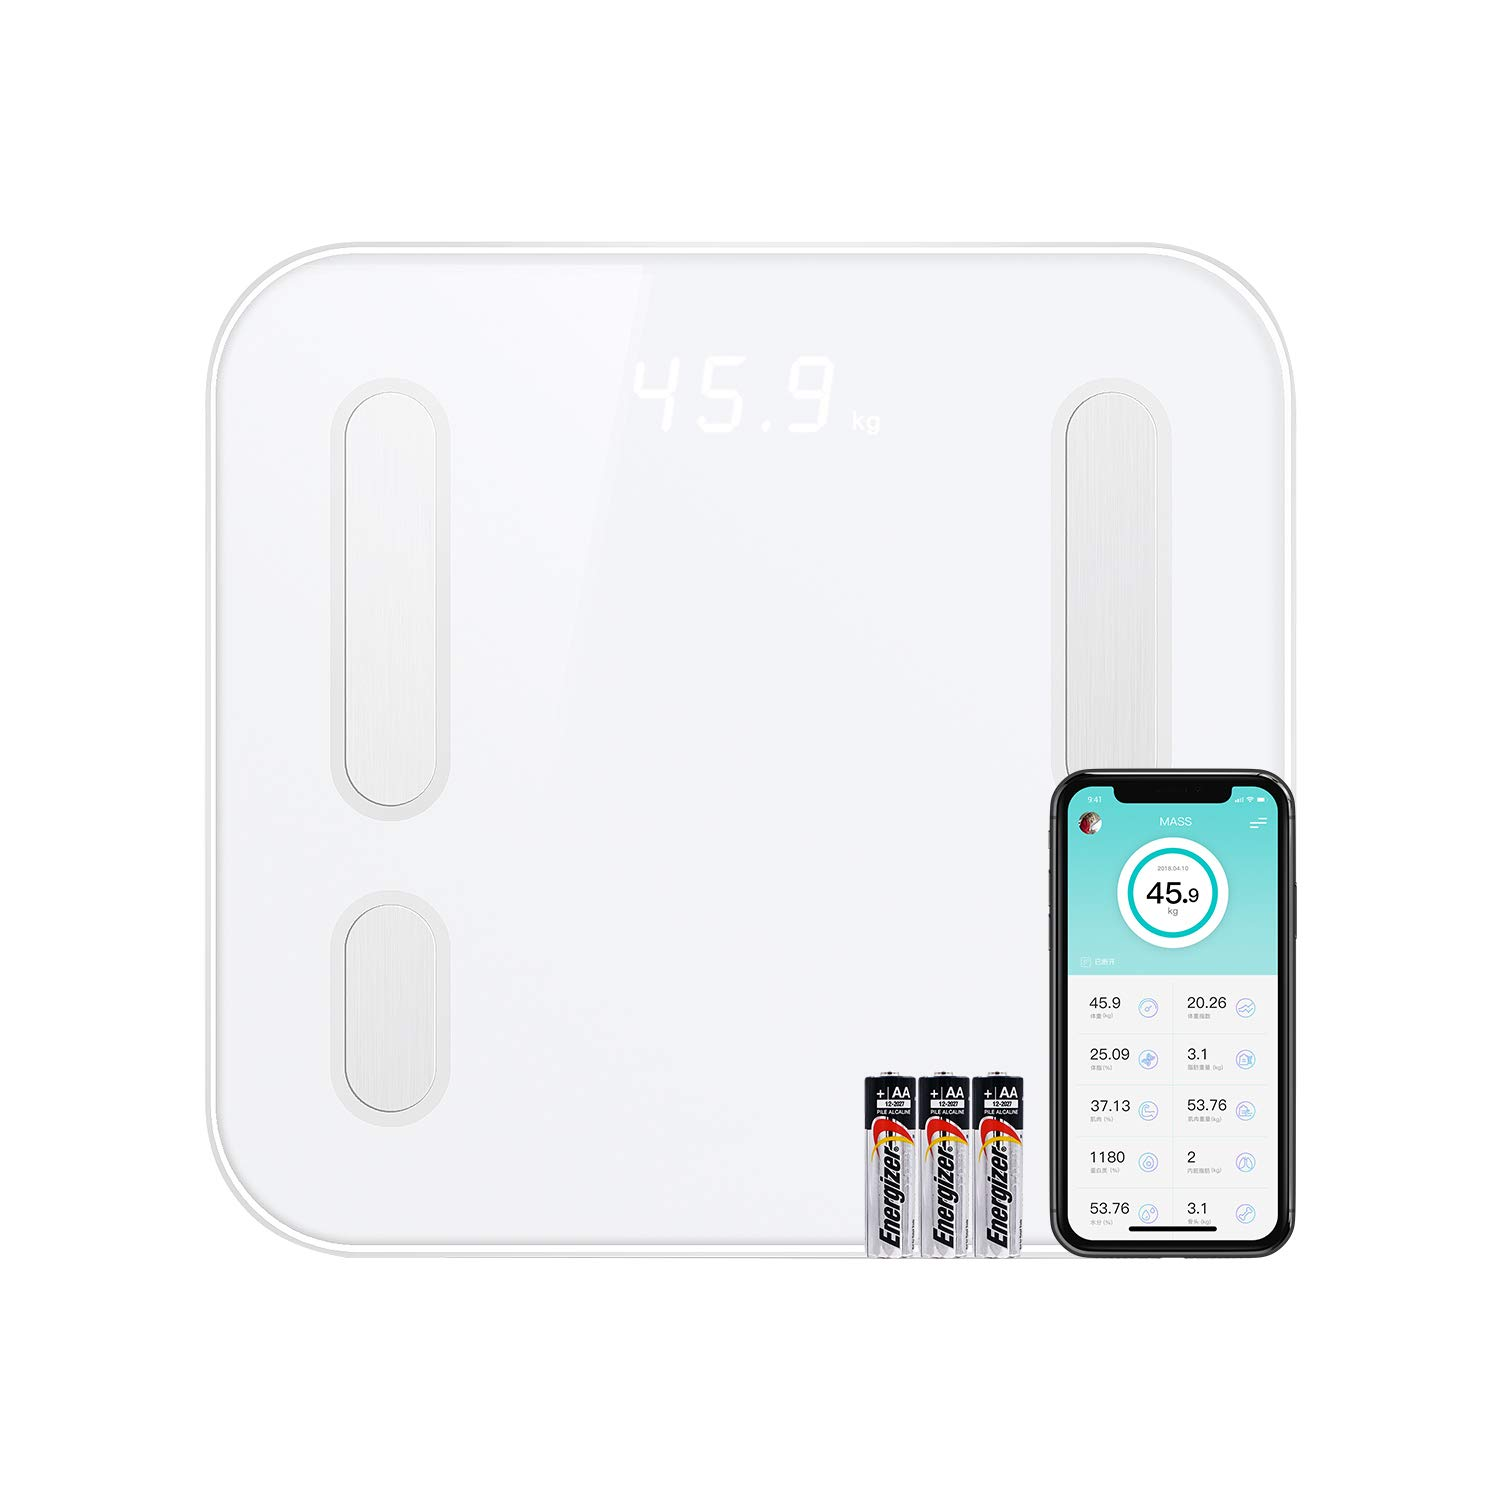 CooSpo Smart Scale with Bluetooth - BMI Composition Analysis with Smart App - Tracks up to 8 Users by CooSpo